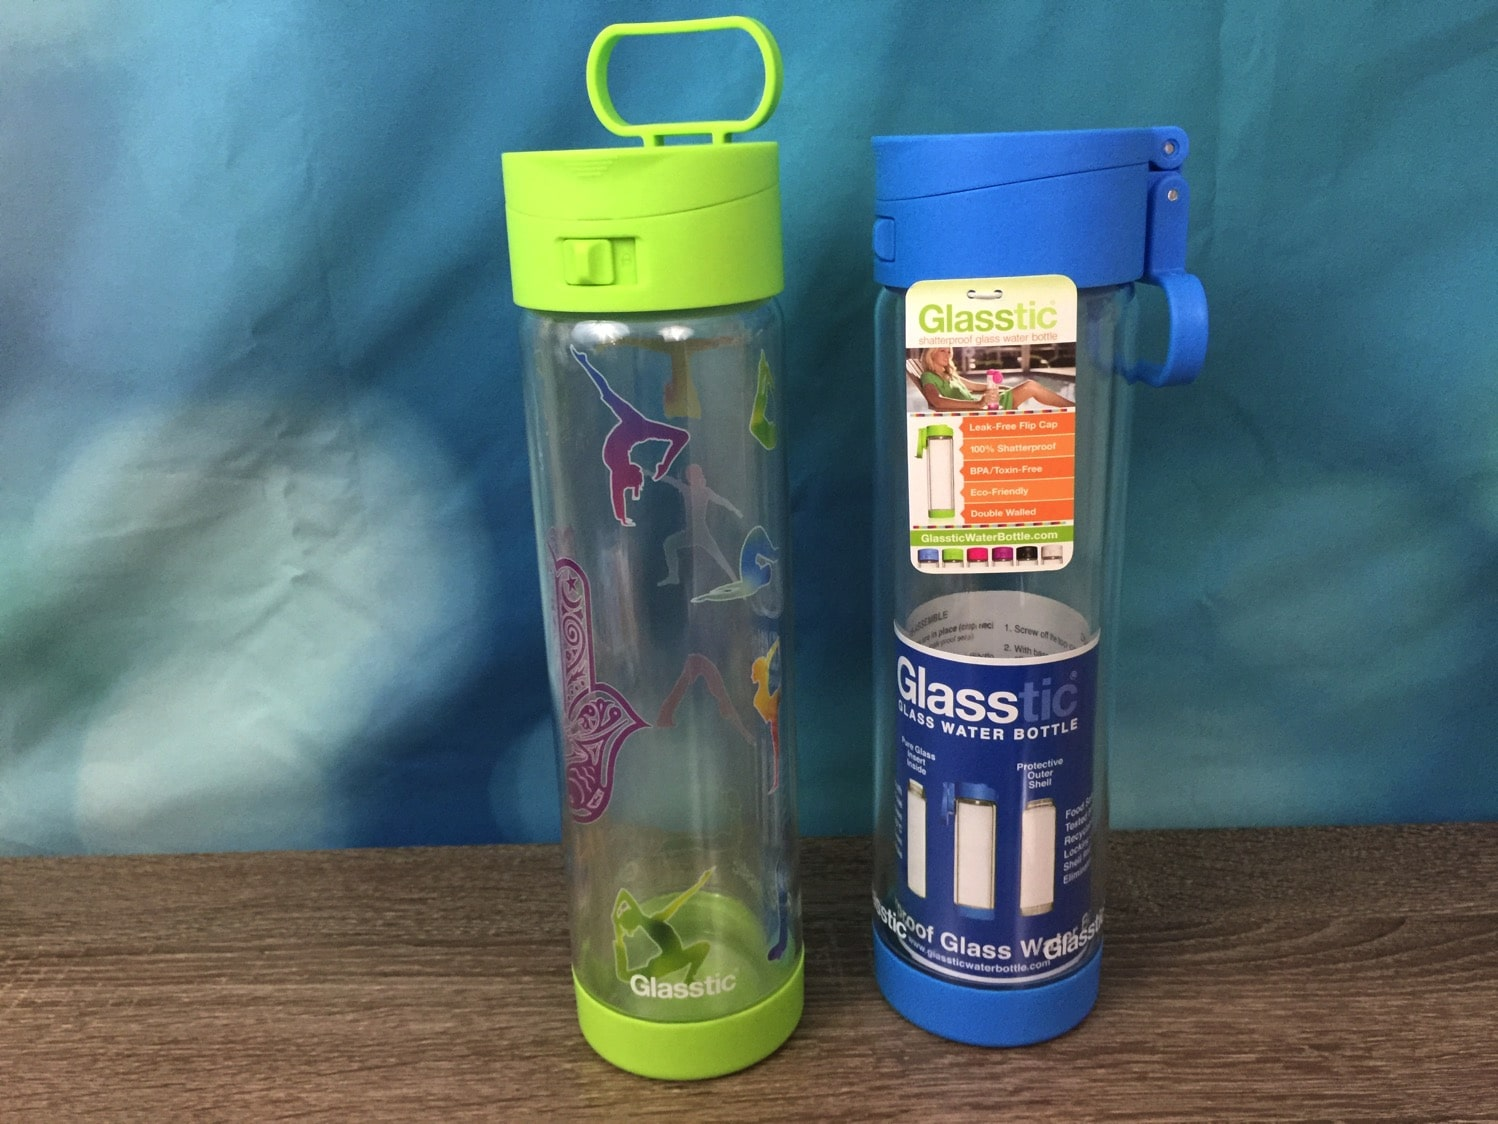 Glasstic shatterproof water bottle